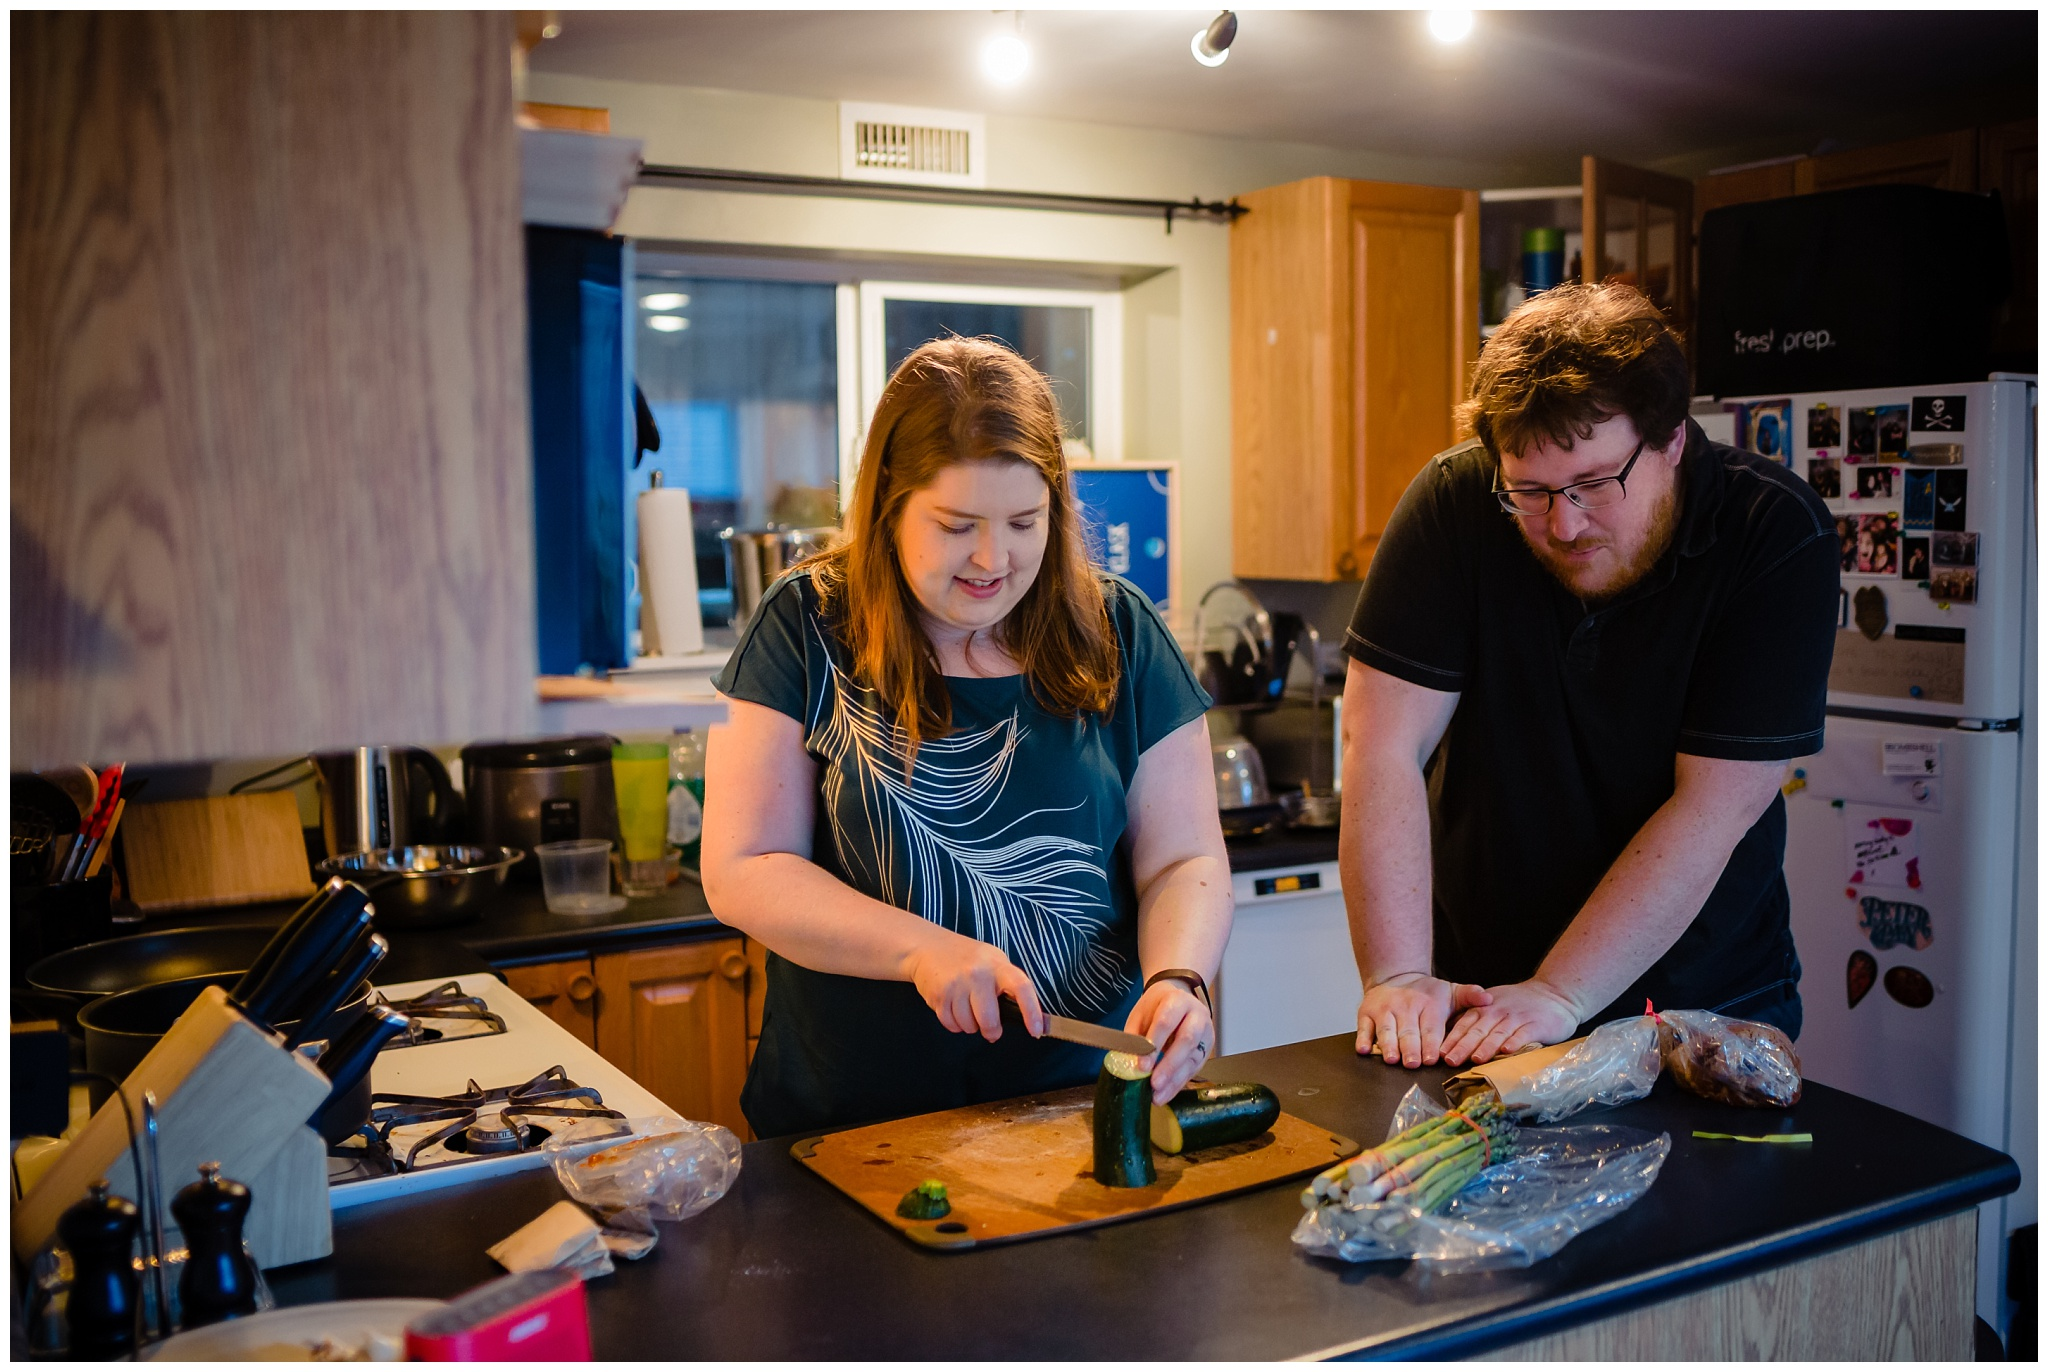 Granville Island Public Market Candid Documentary Engagement Photos Making Dinner In home Romantic BBQ fun plus size couple_0014.jpg